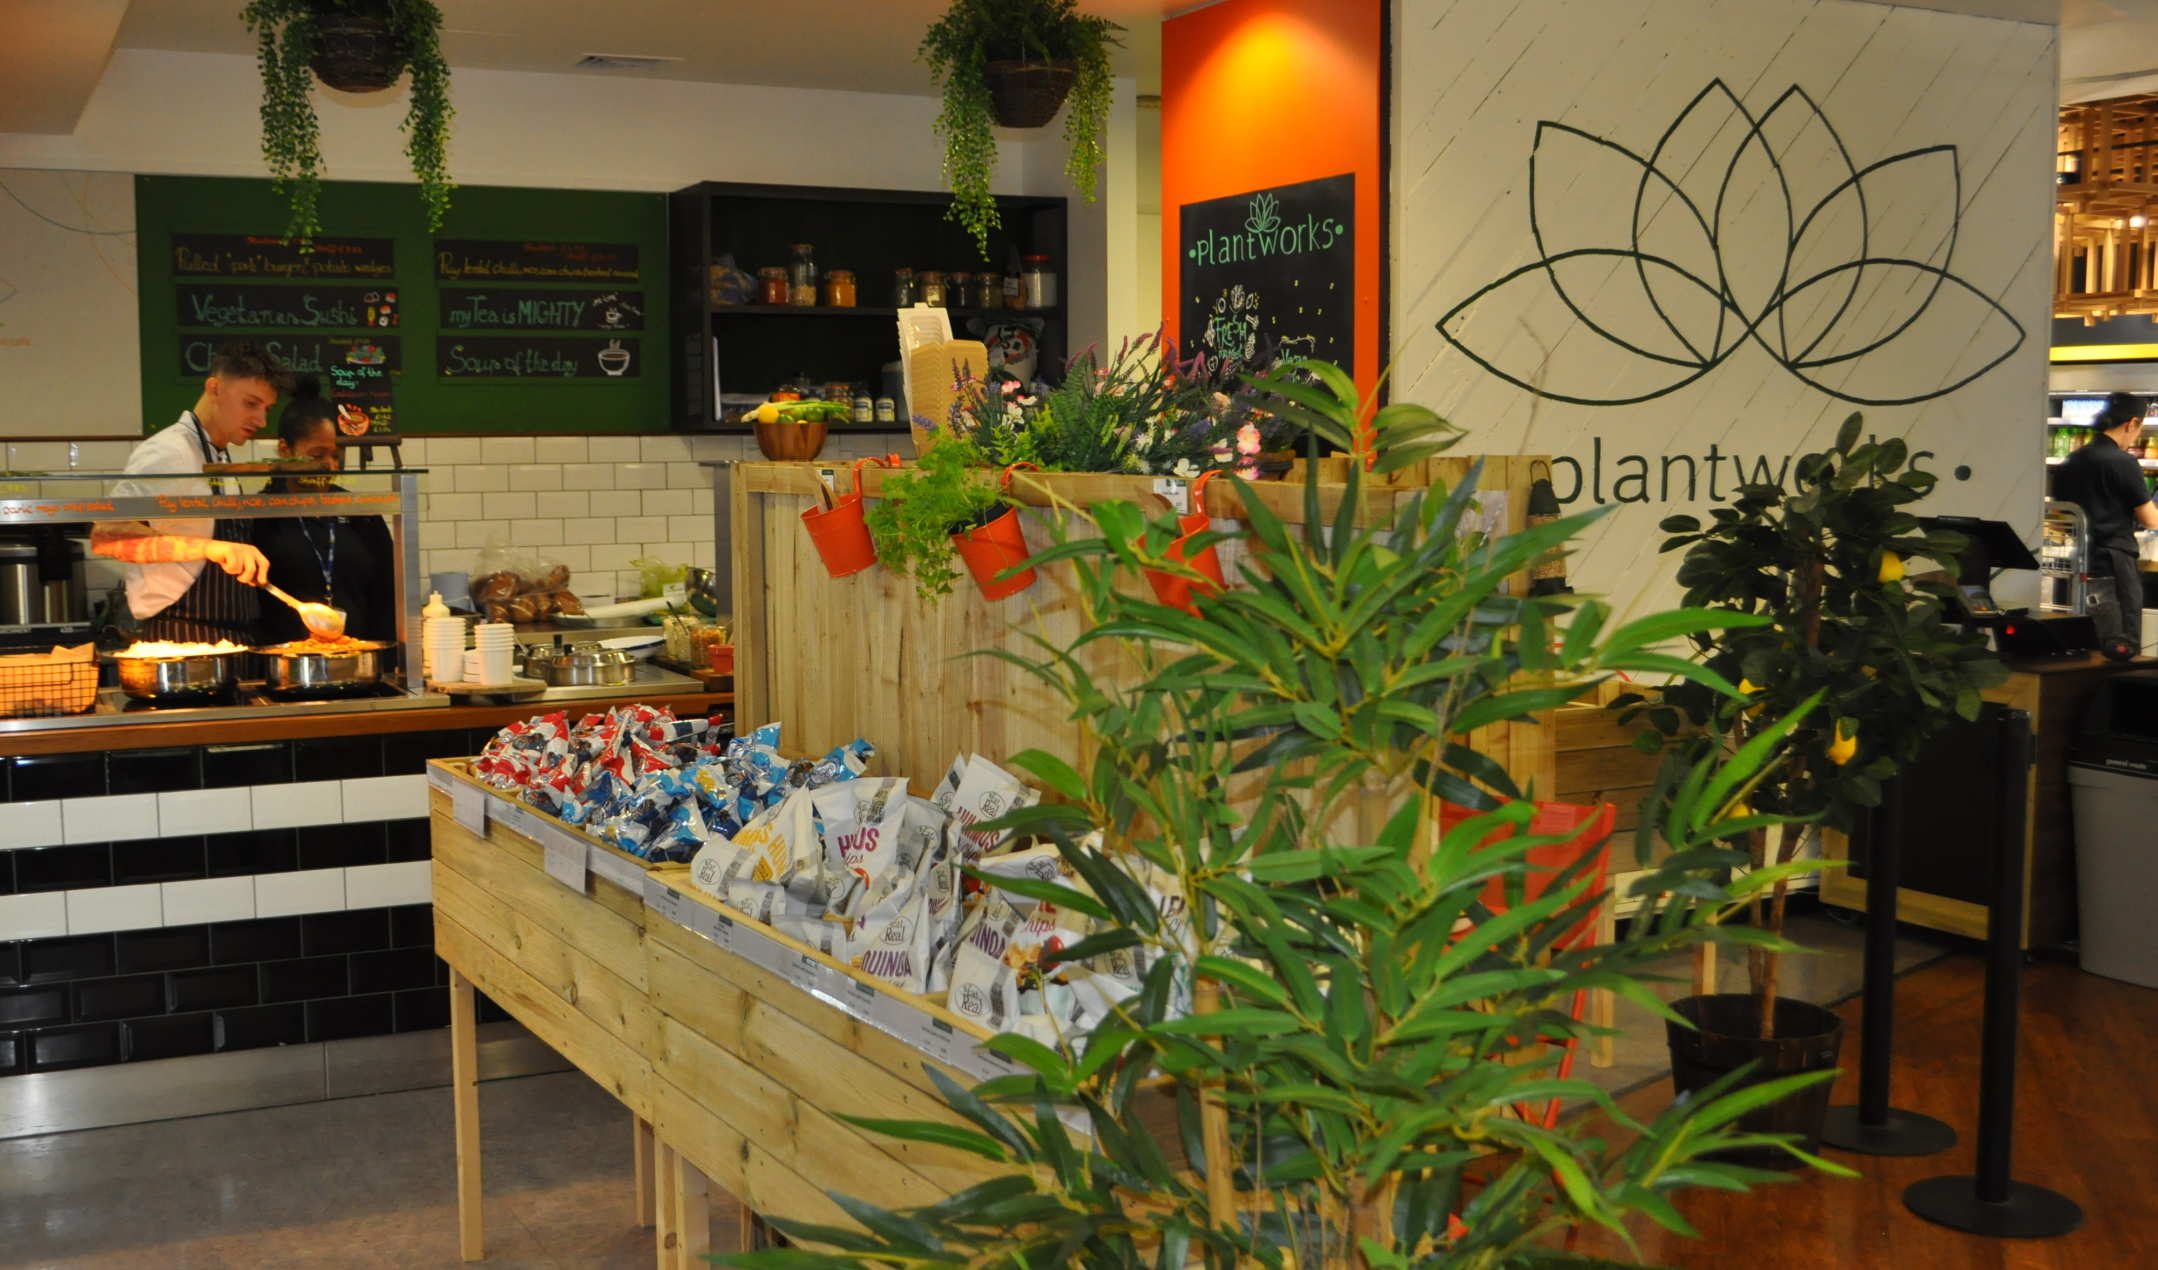 Plantworks image 1